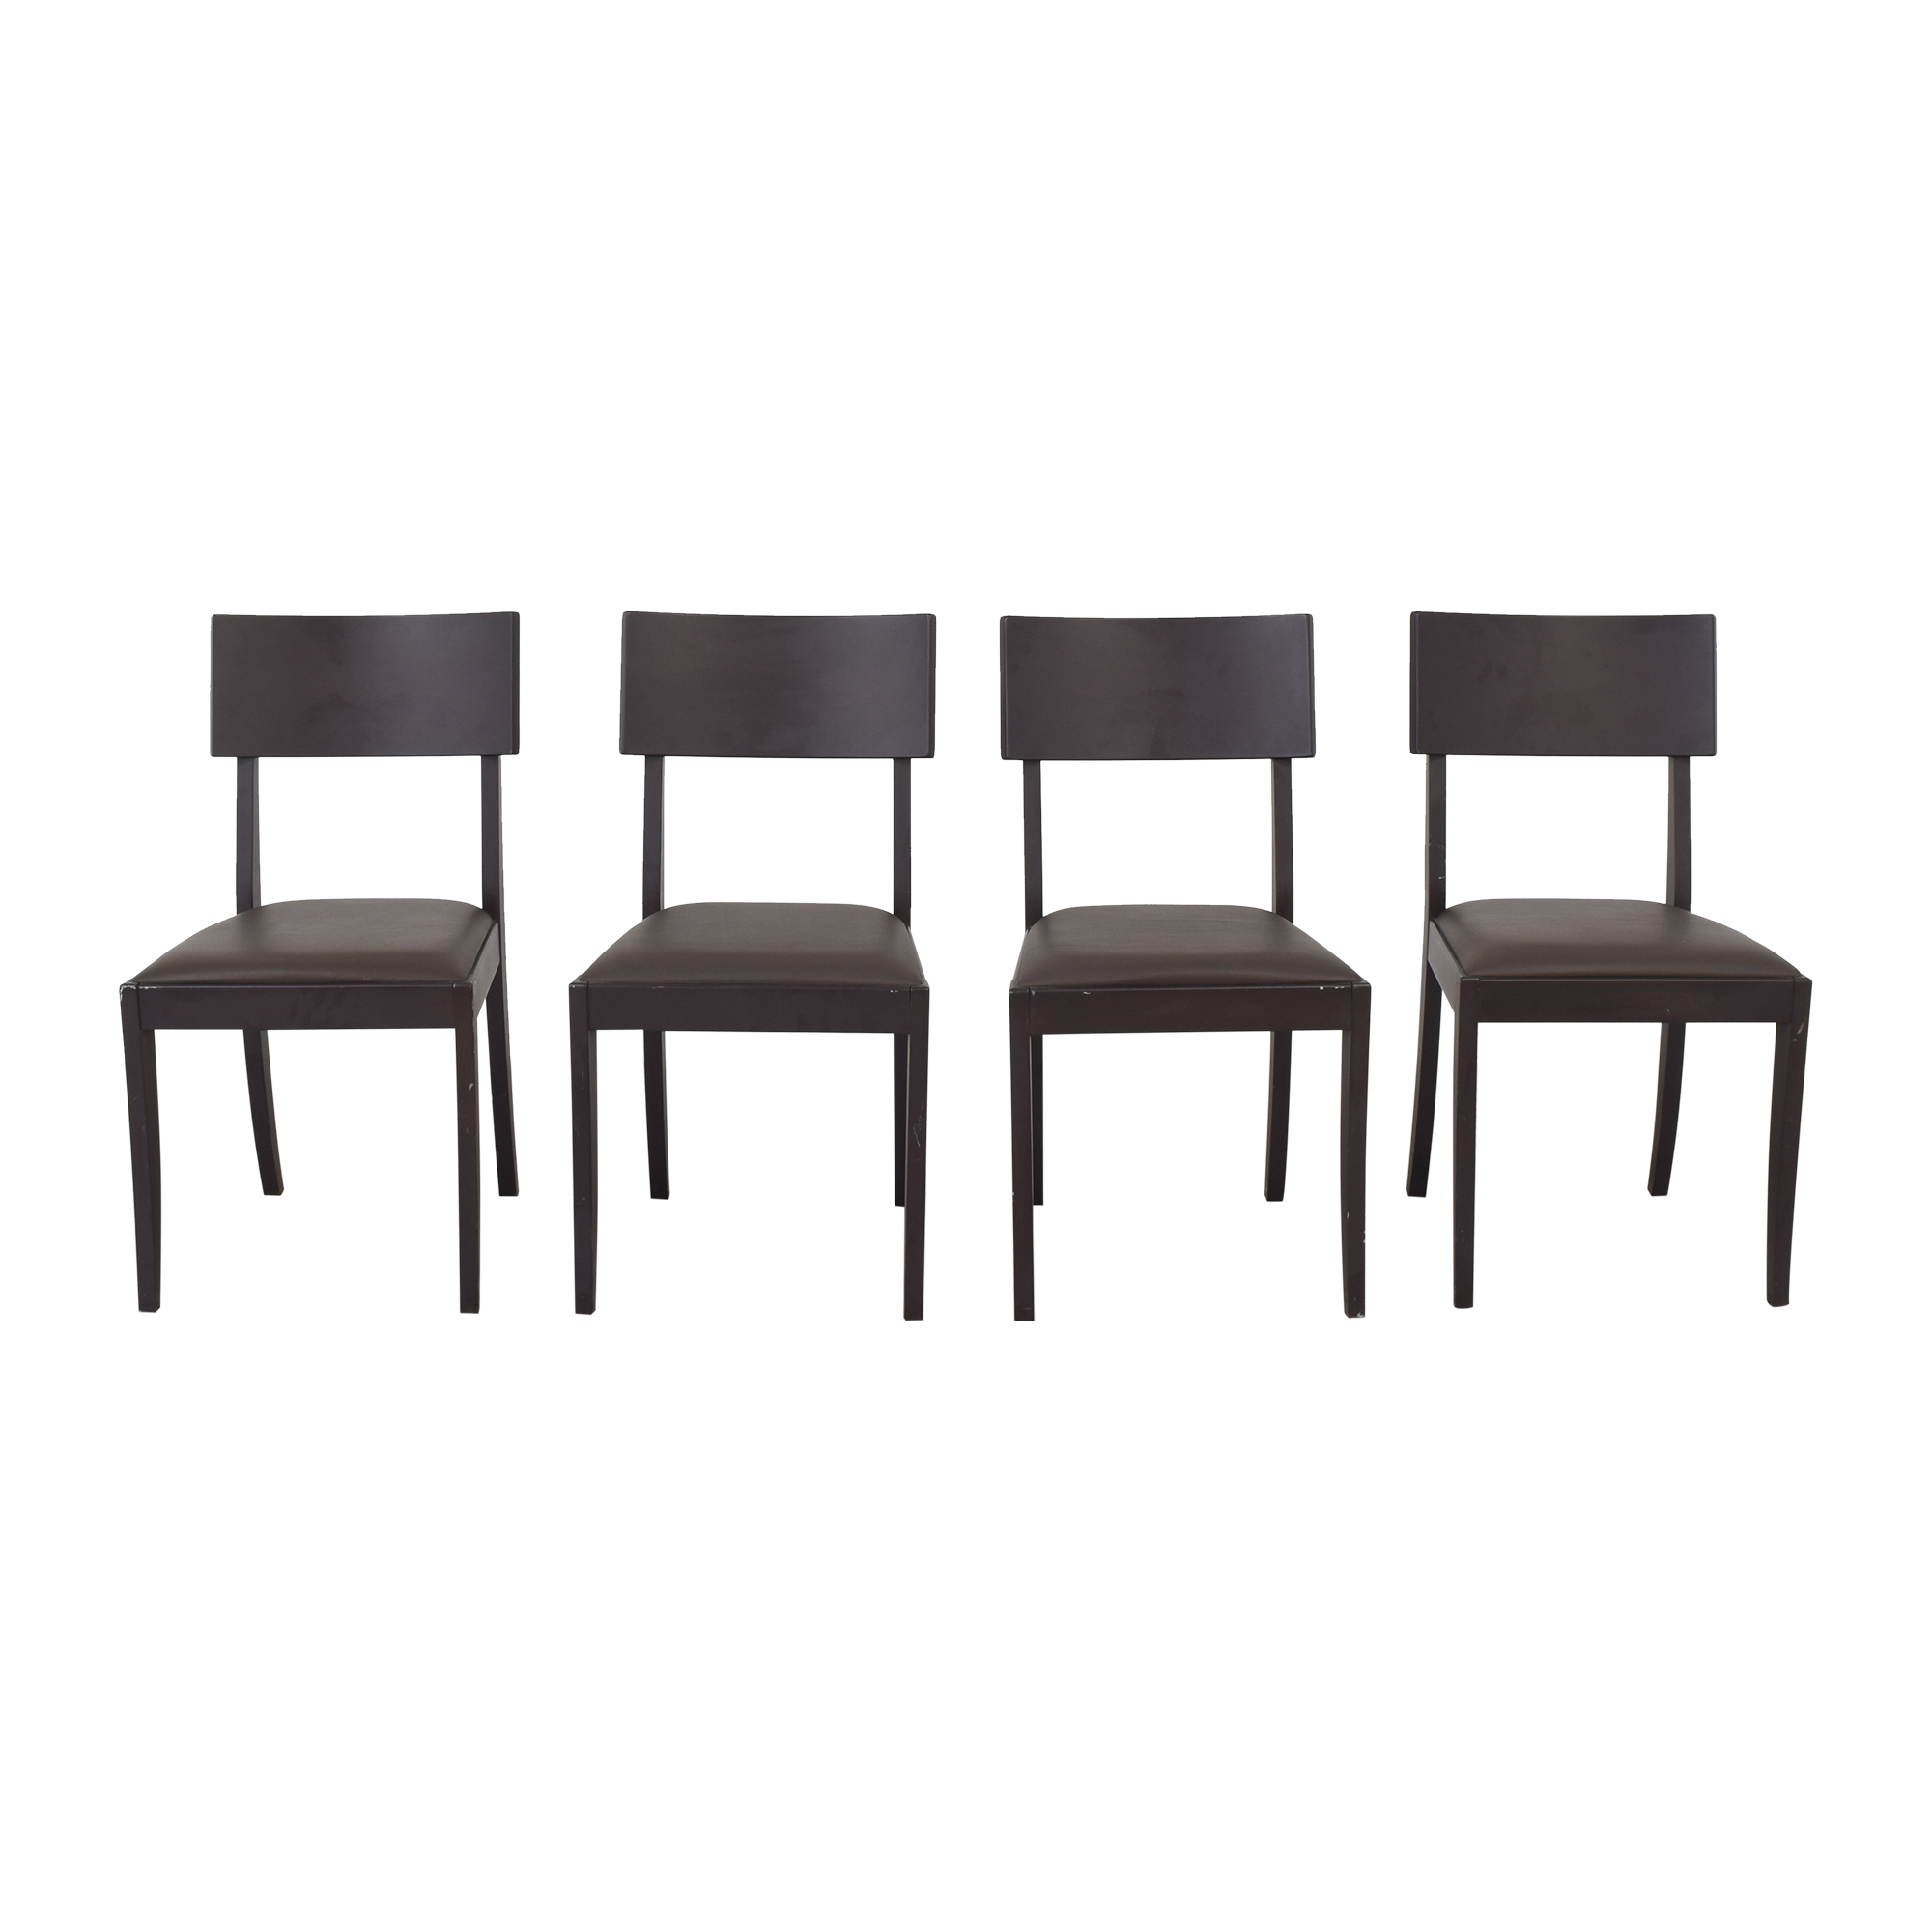 Crate & Barrel Crate & Barrel Dining Chairs pa